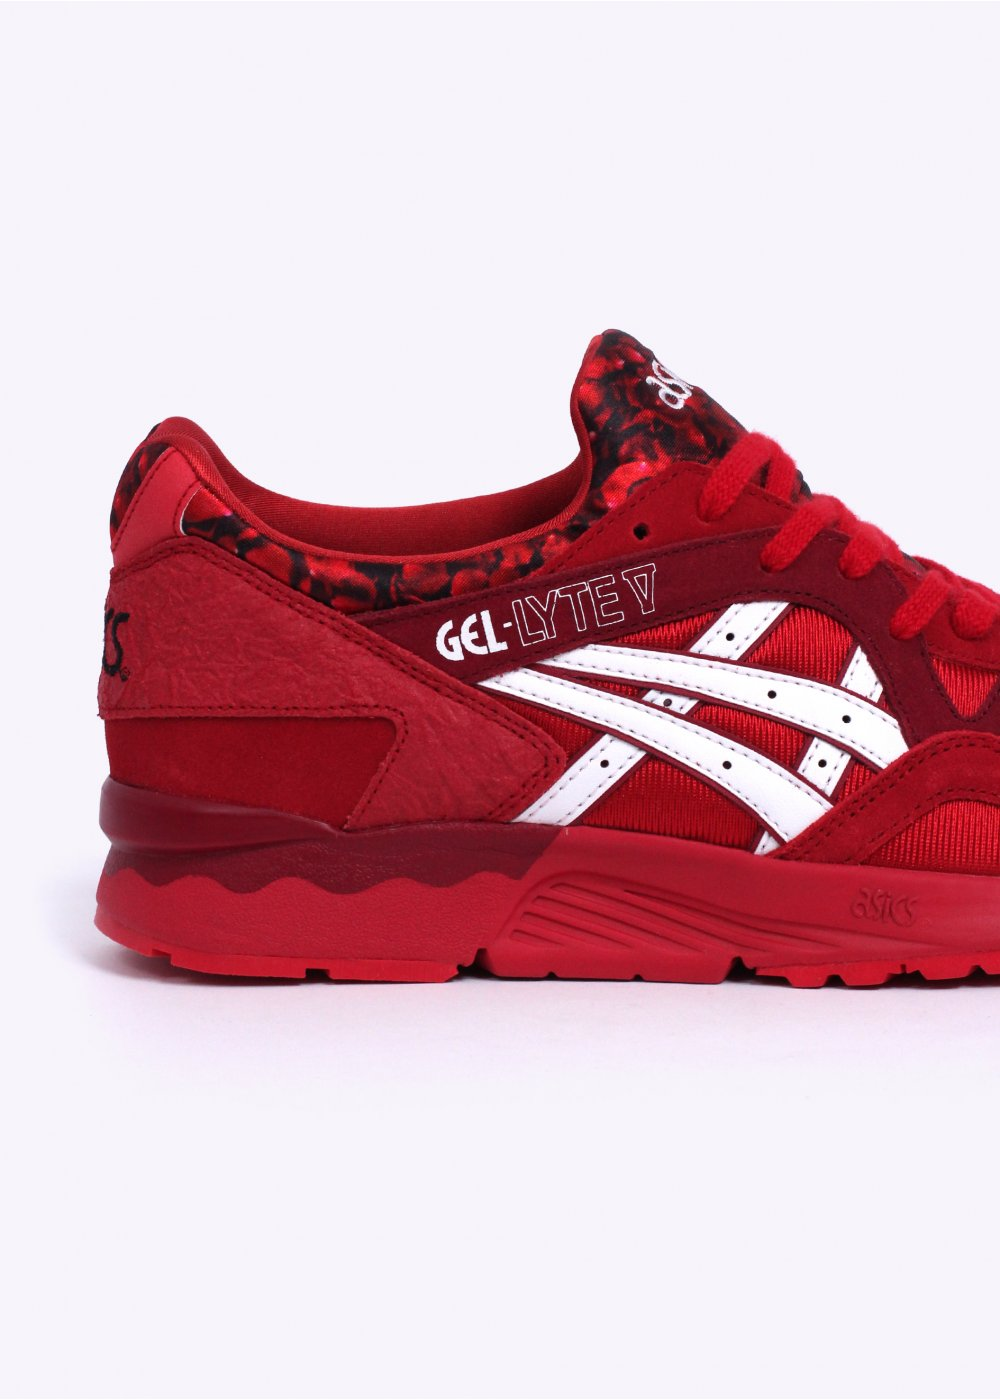 asics gel lyte v red white